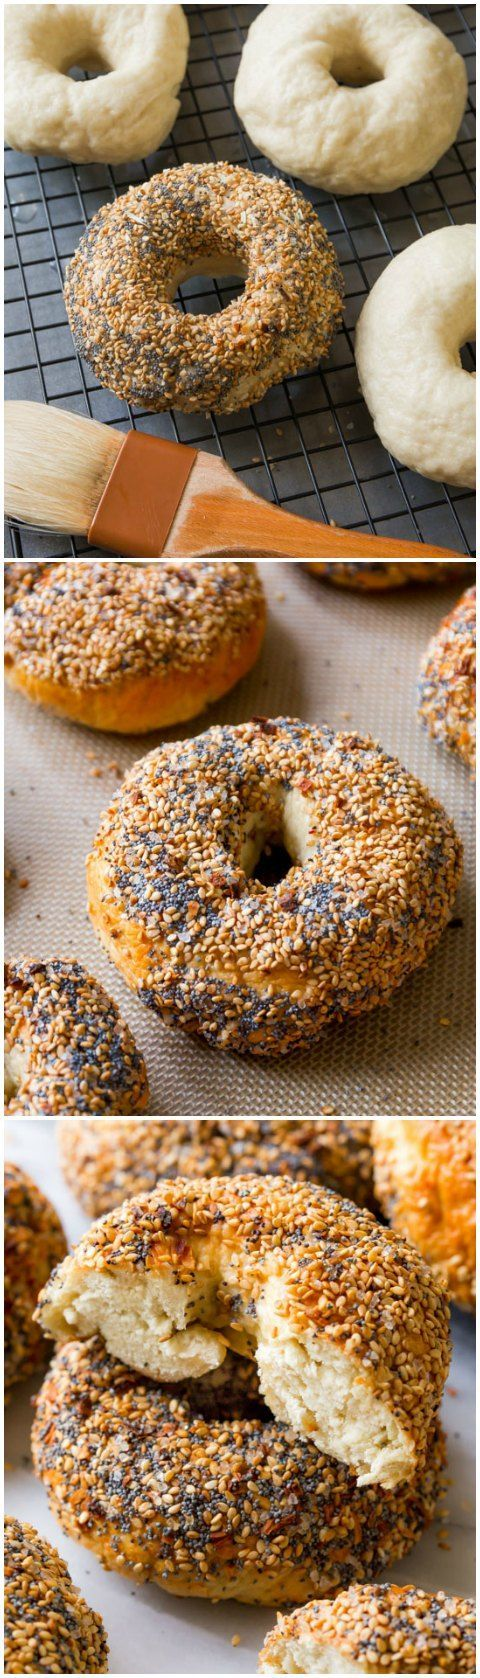 Here's exactly how to make homemade bagels! With TONS of step-by-step photos!